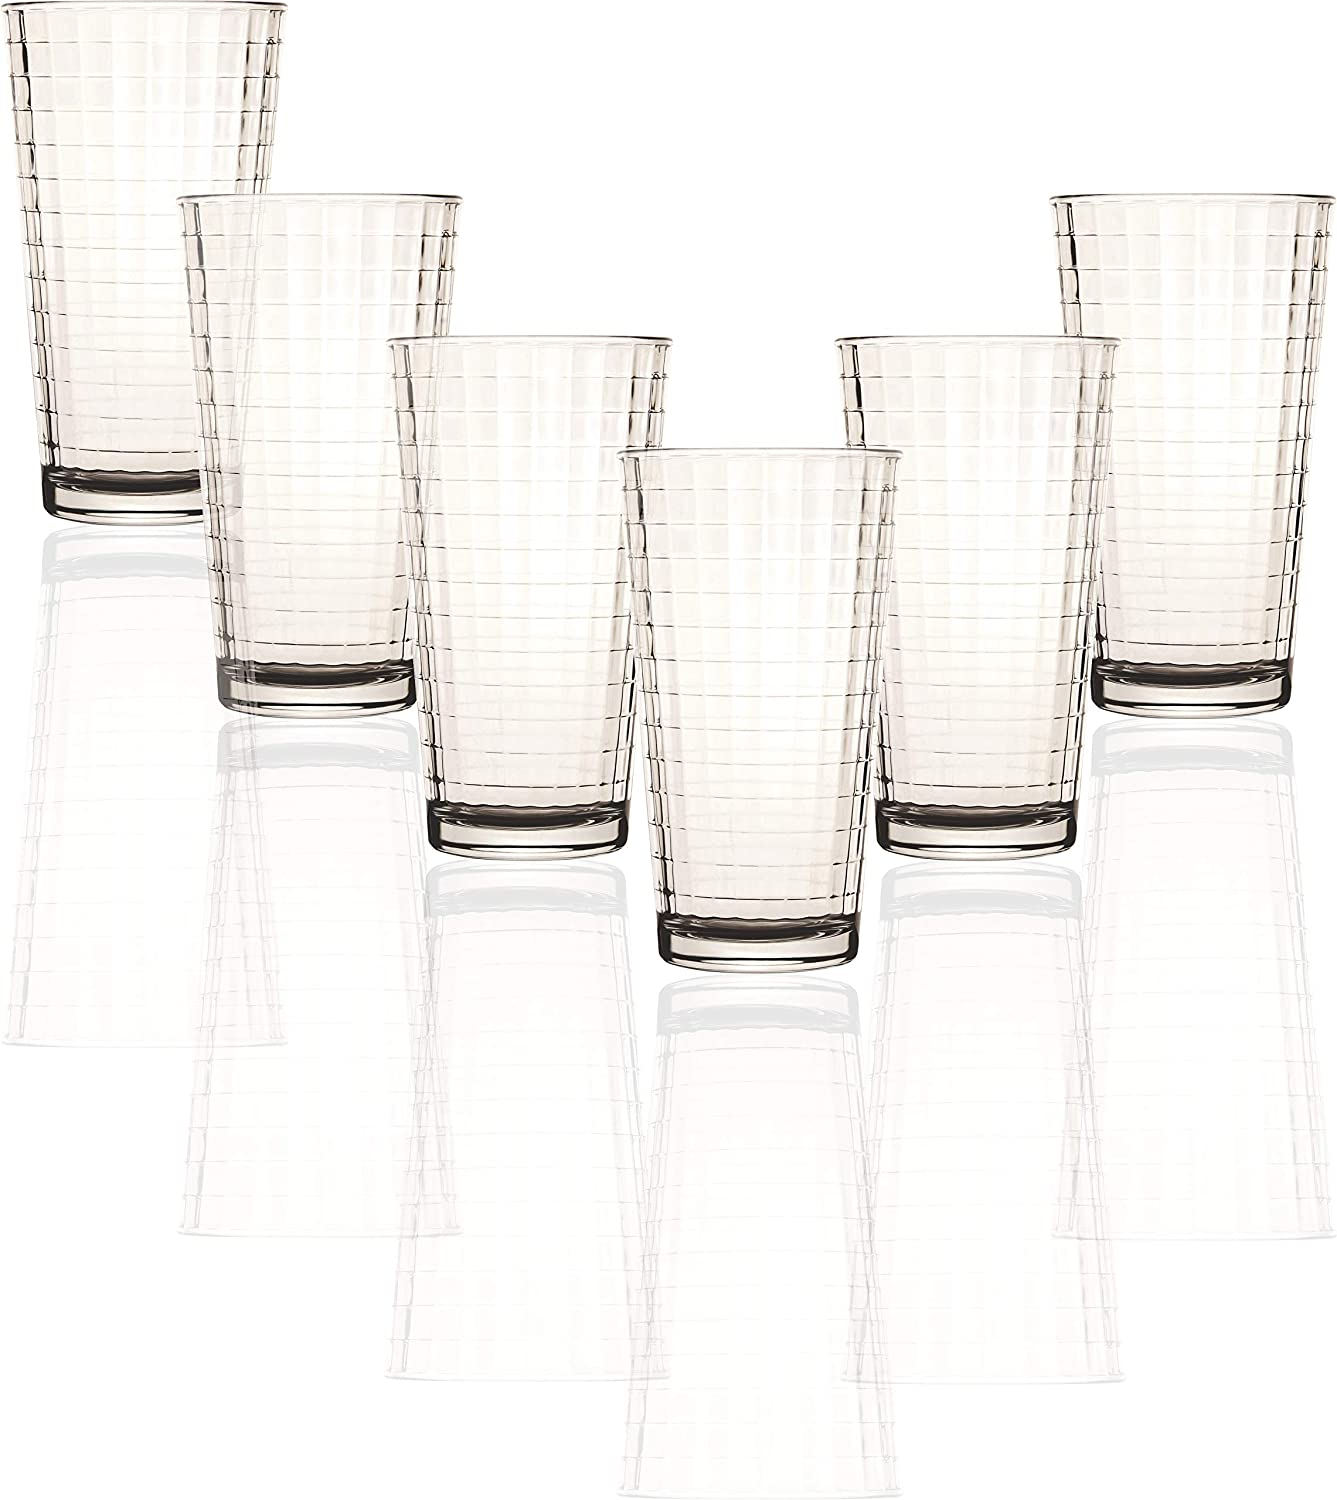 Circleware 40113 Matrix Set of 6 Heavy Base Tumbler Cooler Beverage Glasses 15.75 oz, Drinking Highball, Cups for Water, Juice, Milk, Beer, Ice Tea, Farmhouse Decor, Selling Gifts, 6pc